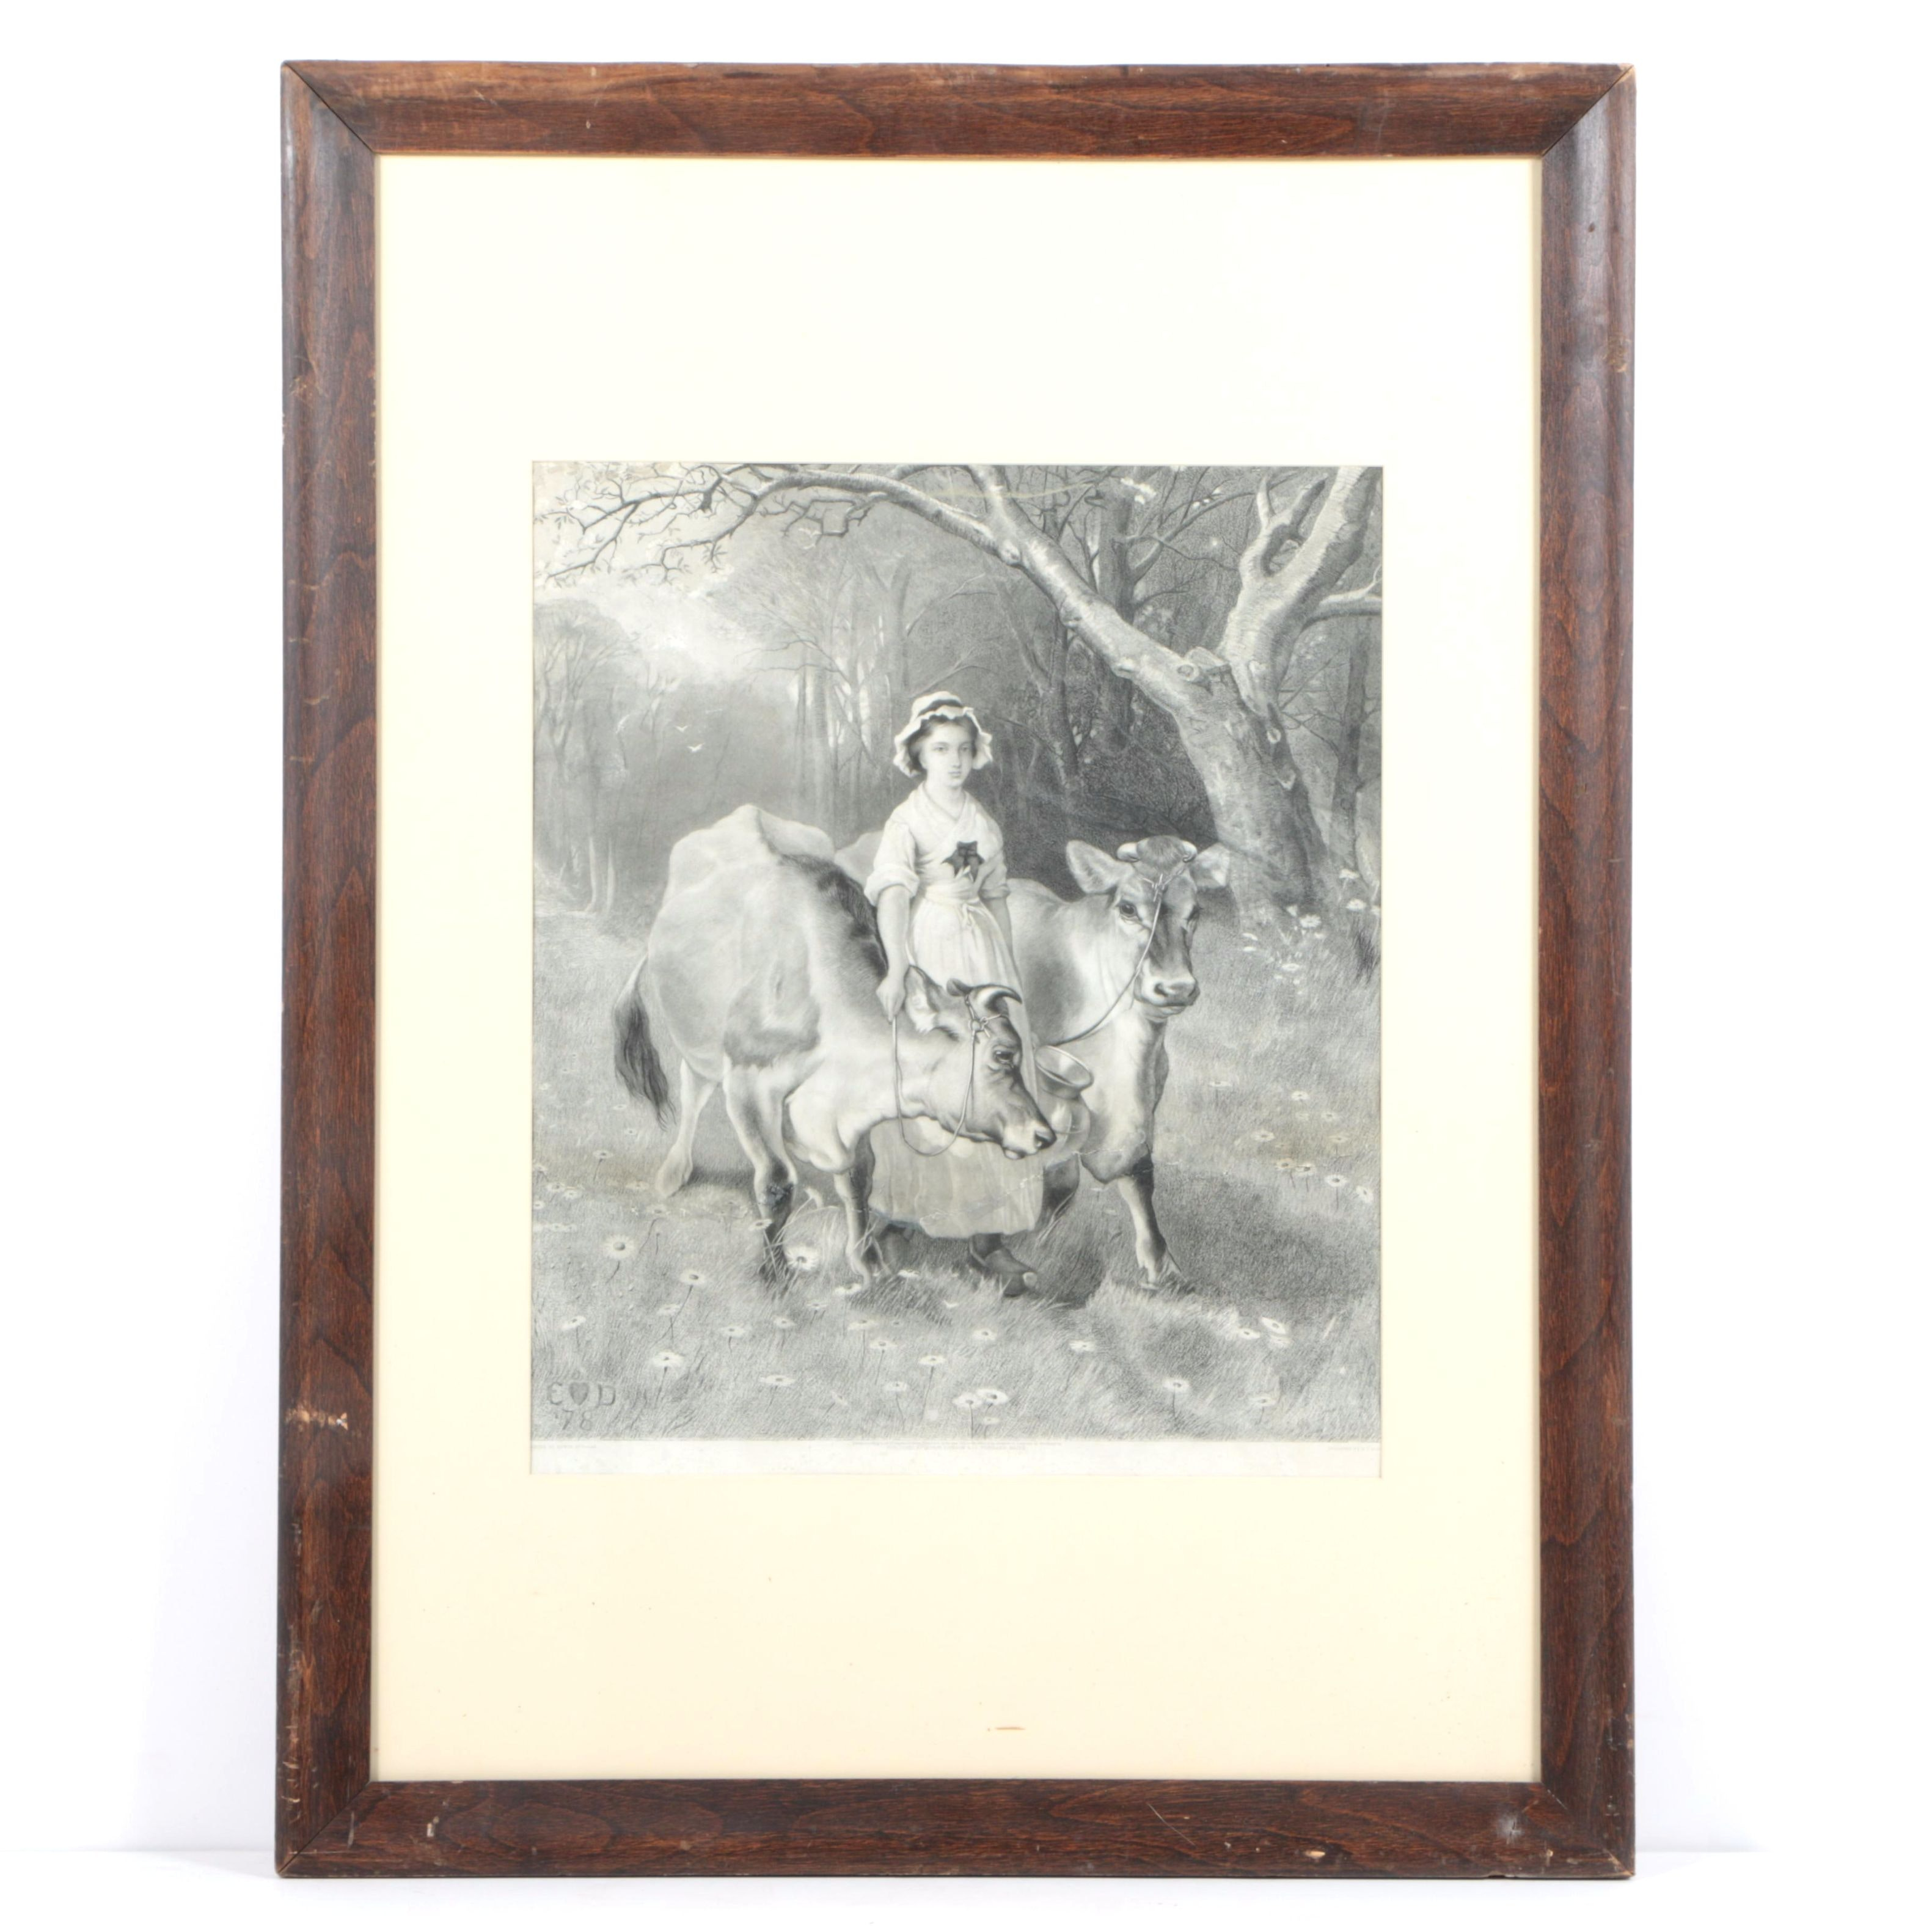 Engraving of Girl with Two Cows